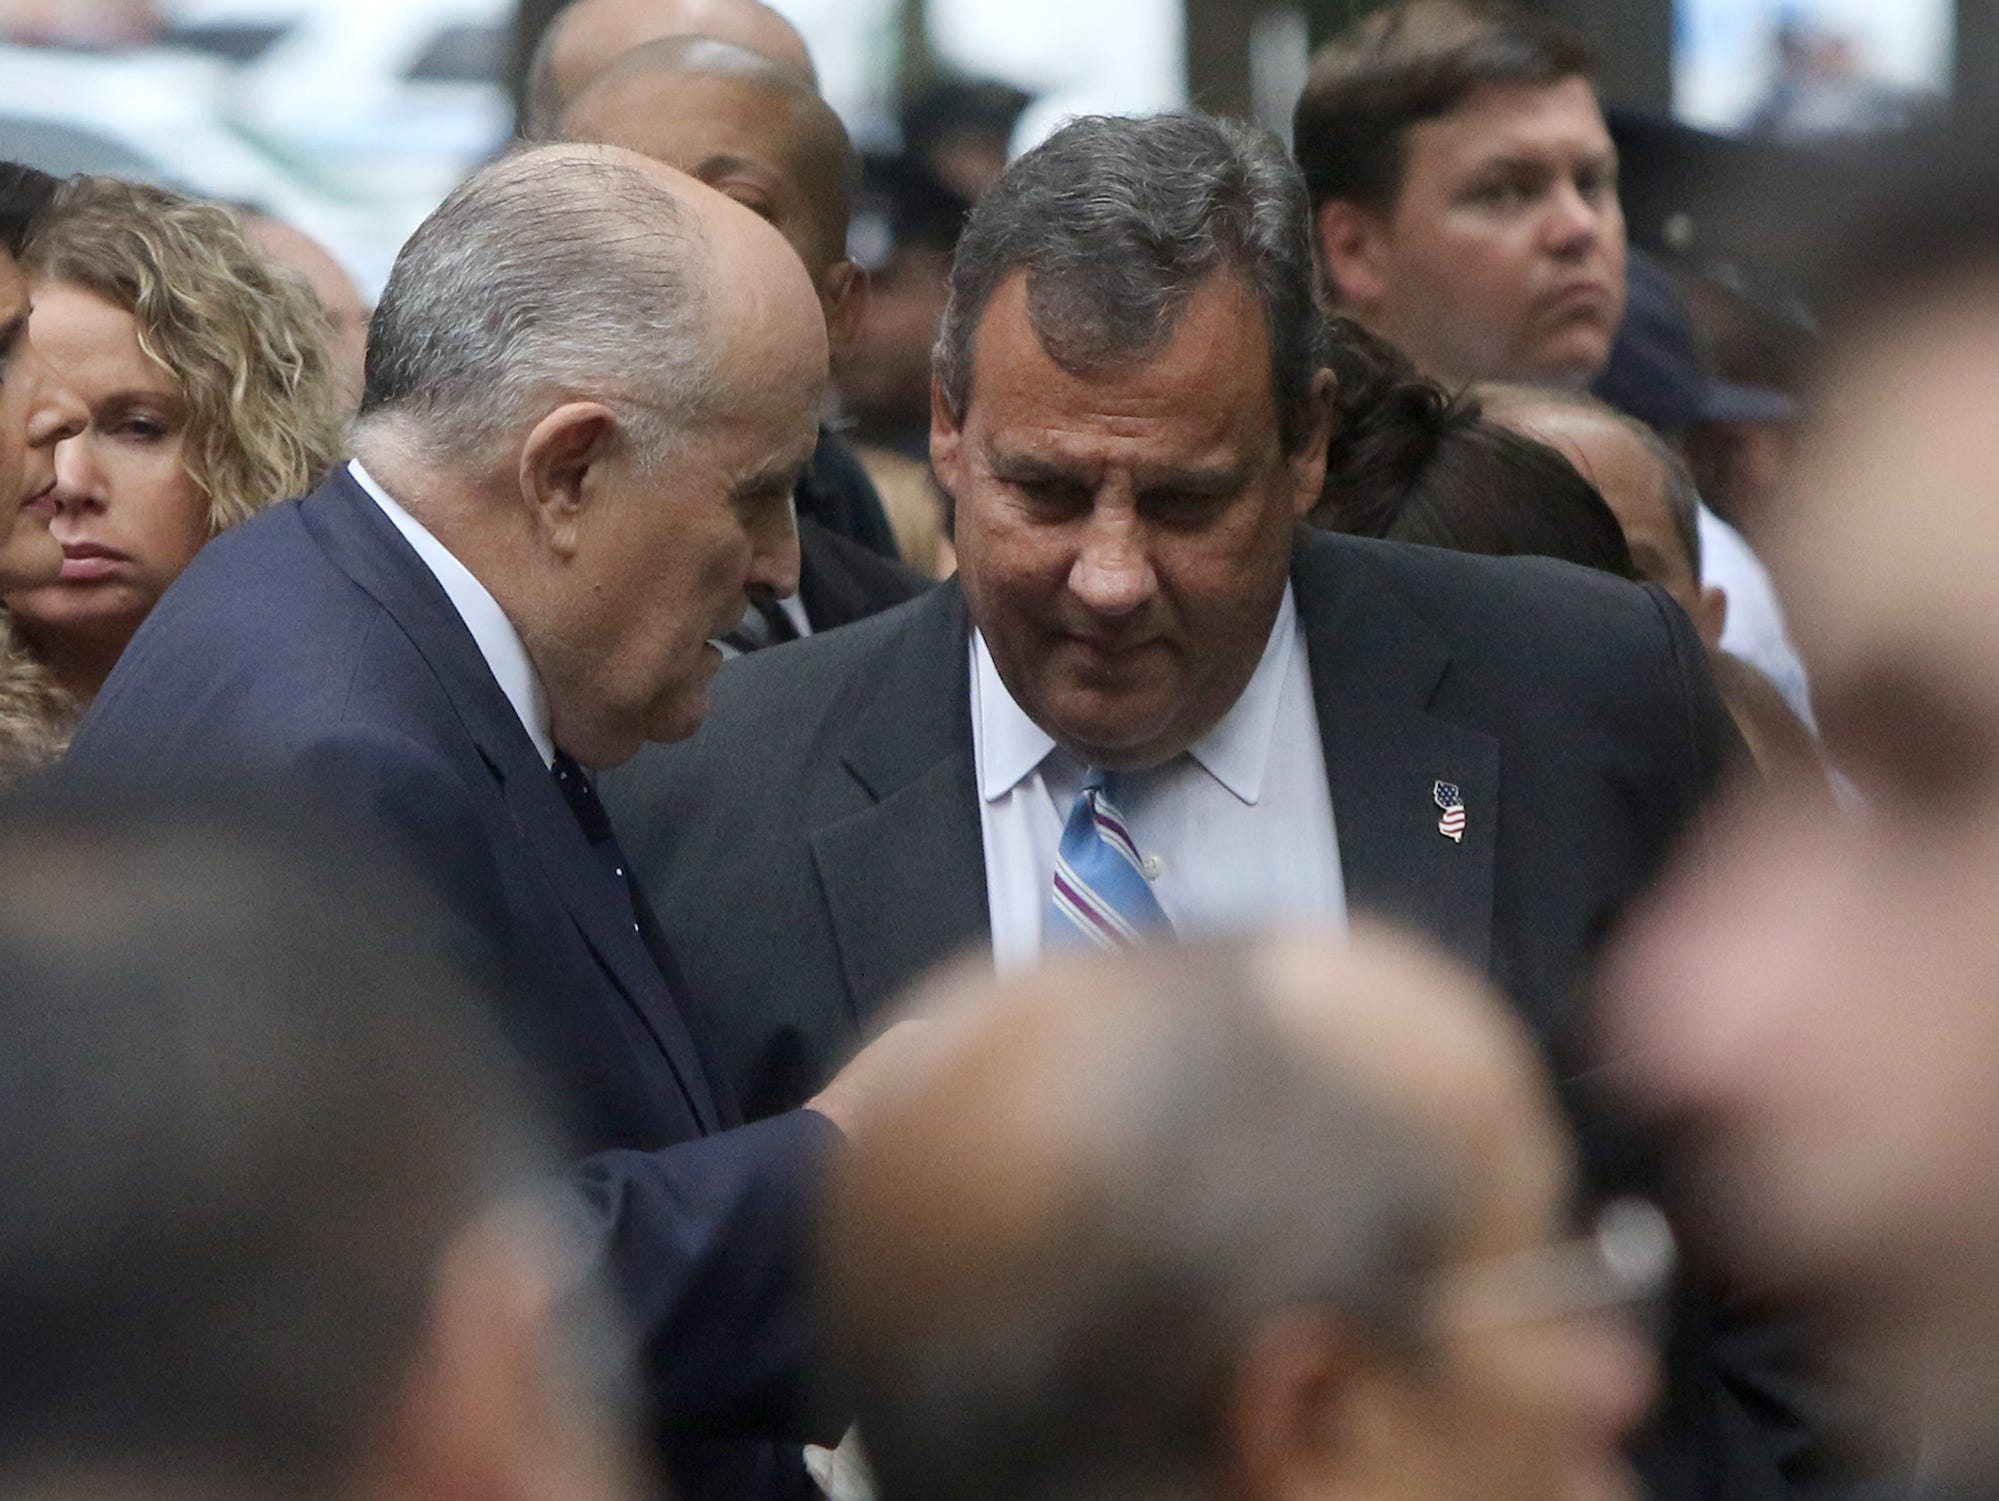 Former NYC Mayor Rudy Giuliani and former NJ Governor Chris Christie prior to the ceremonies at the National September 11 Memorial observing the 17th anniversaryof the attacks that killed people in Manhattan, the Pentagon, Flight 93 and honoring those who died in the 1993 World Trade Center bombing.